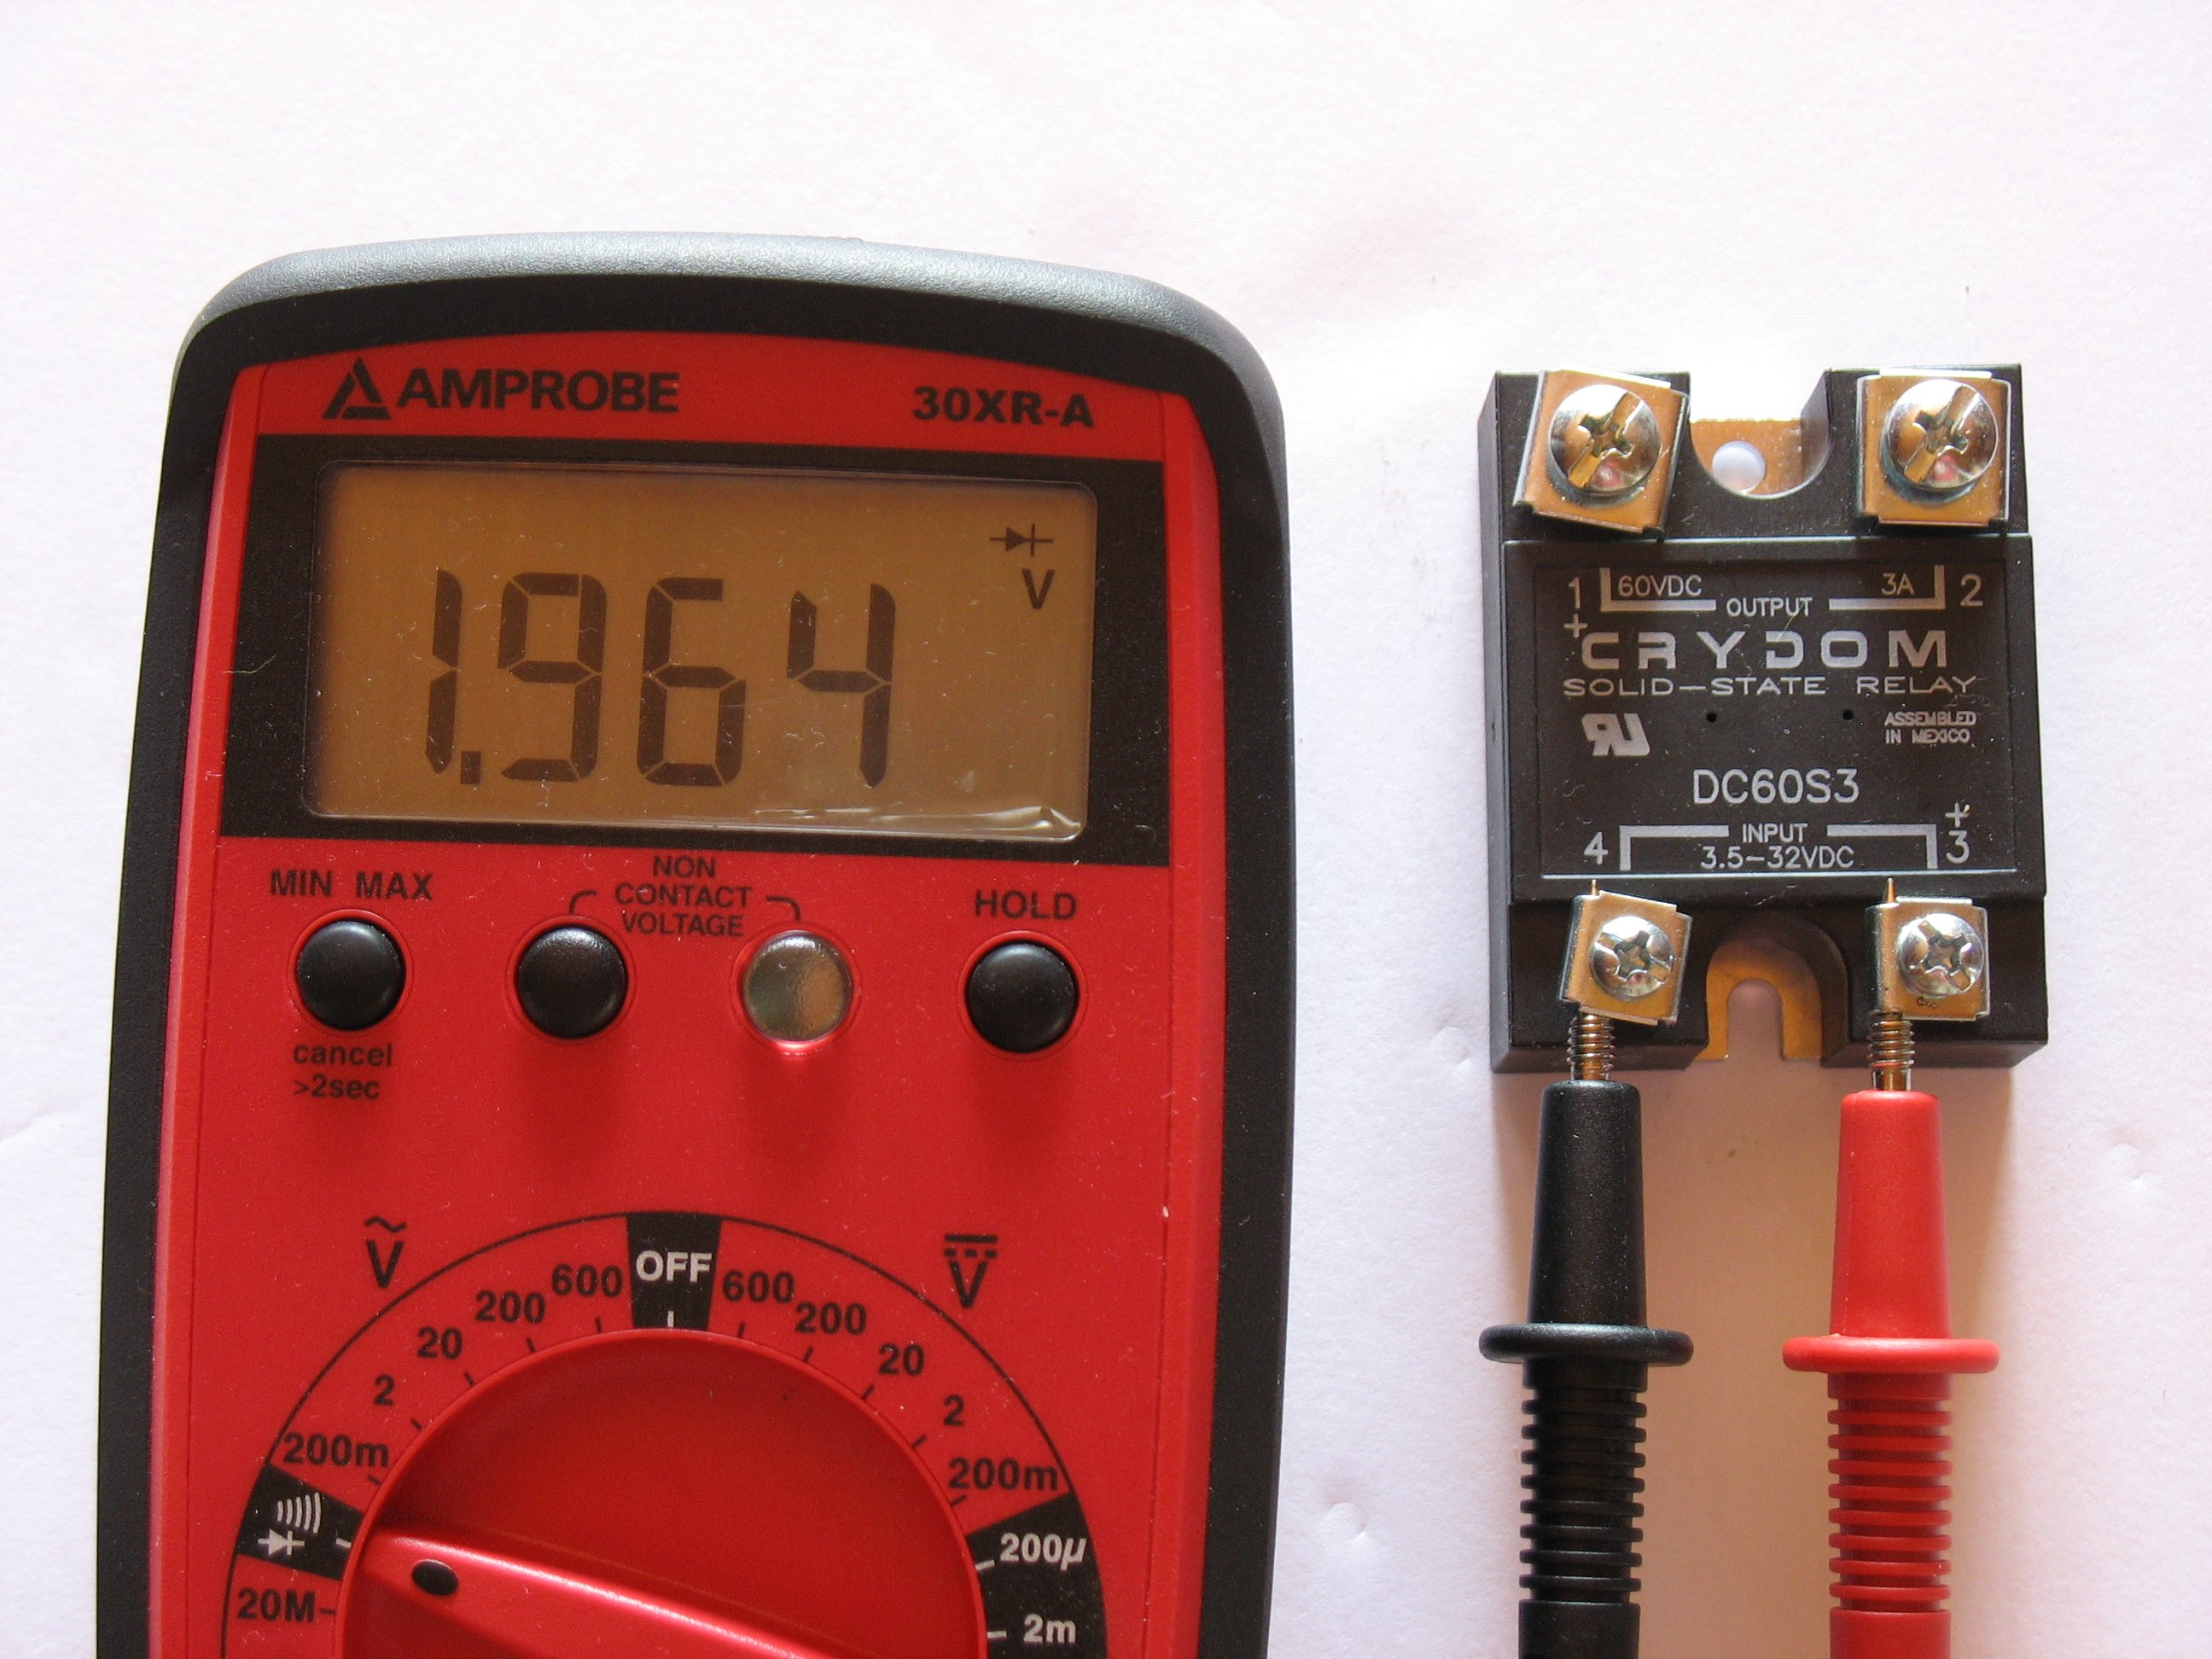 using a diode test, the input terminals can be assessed for the operation of the internal LED